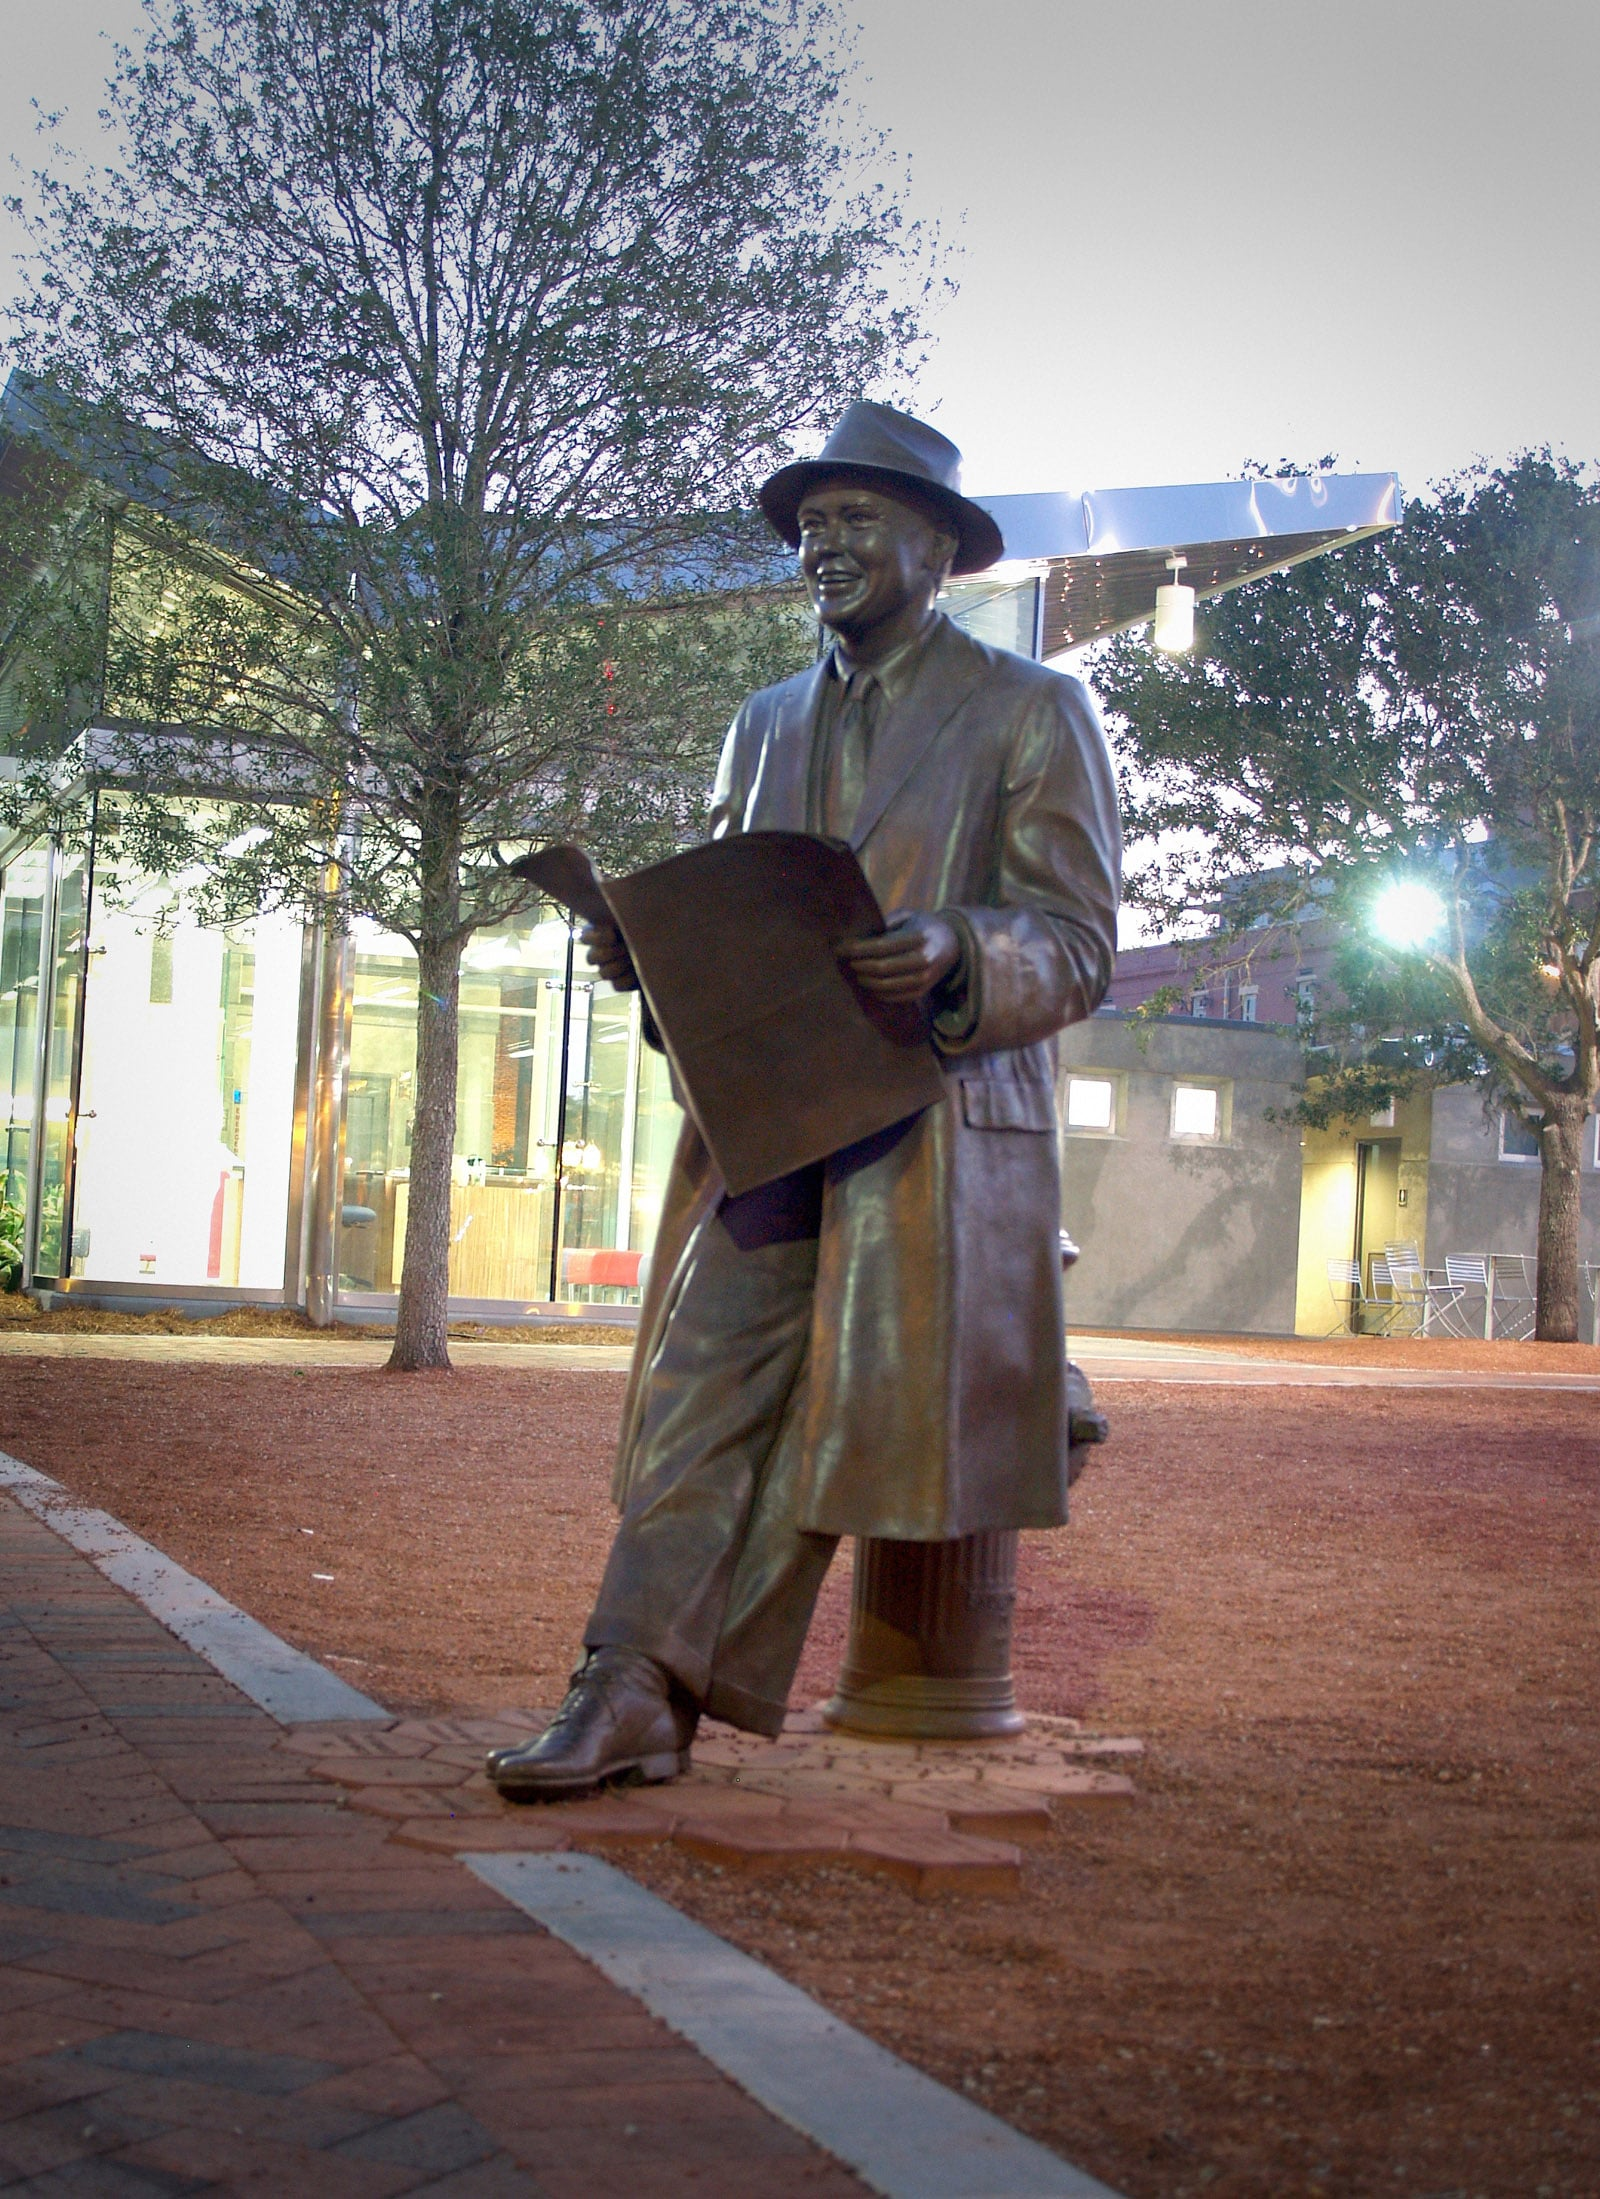 Johnny Mercer statue in Savannah's Ellis Square